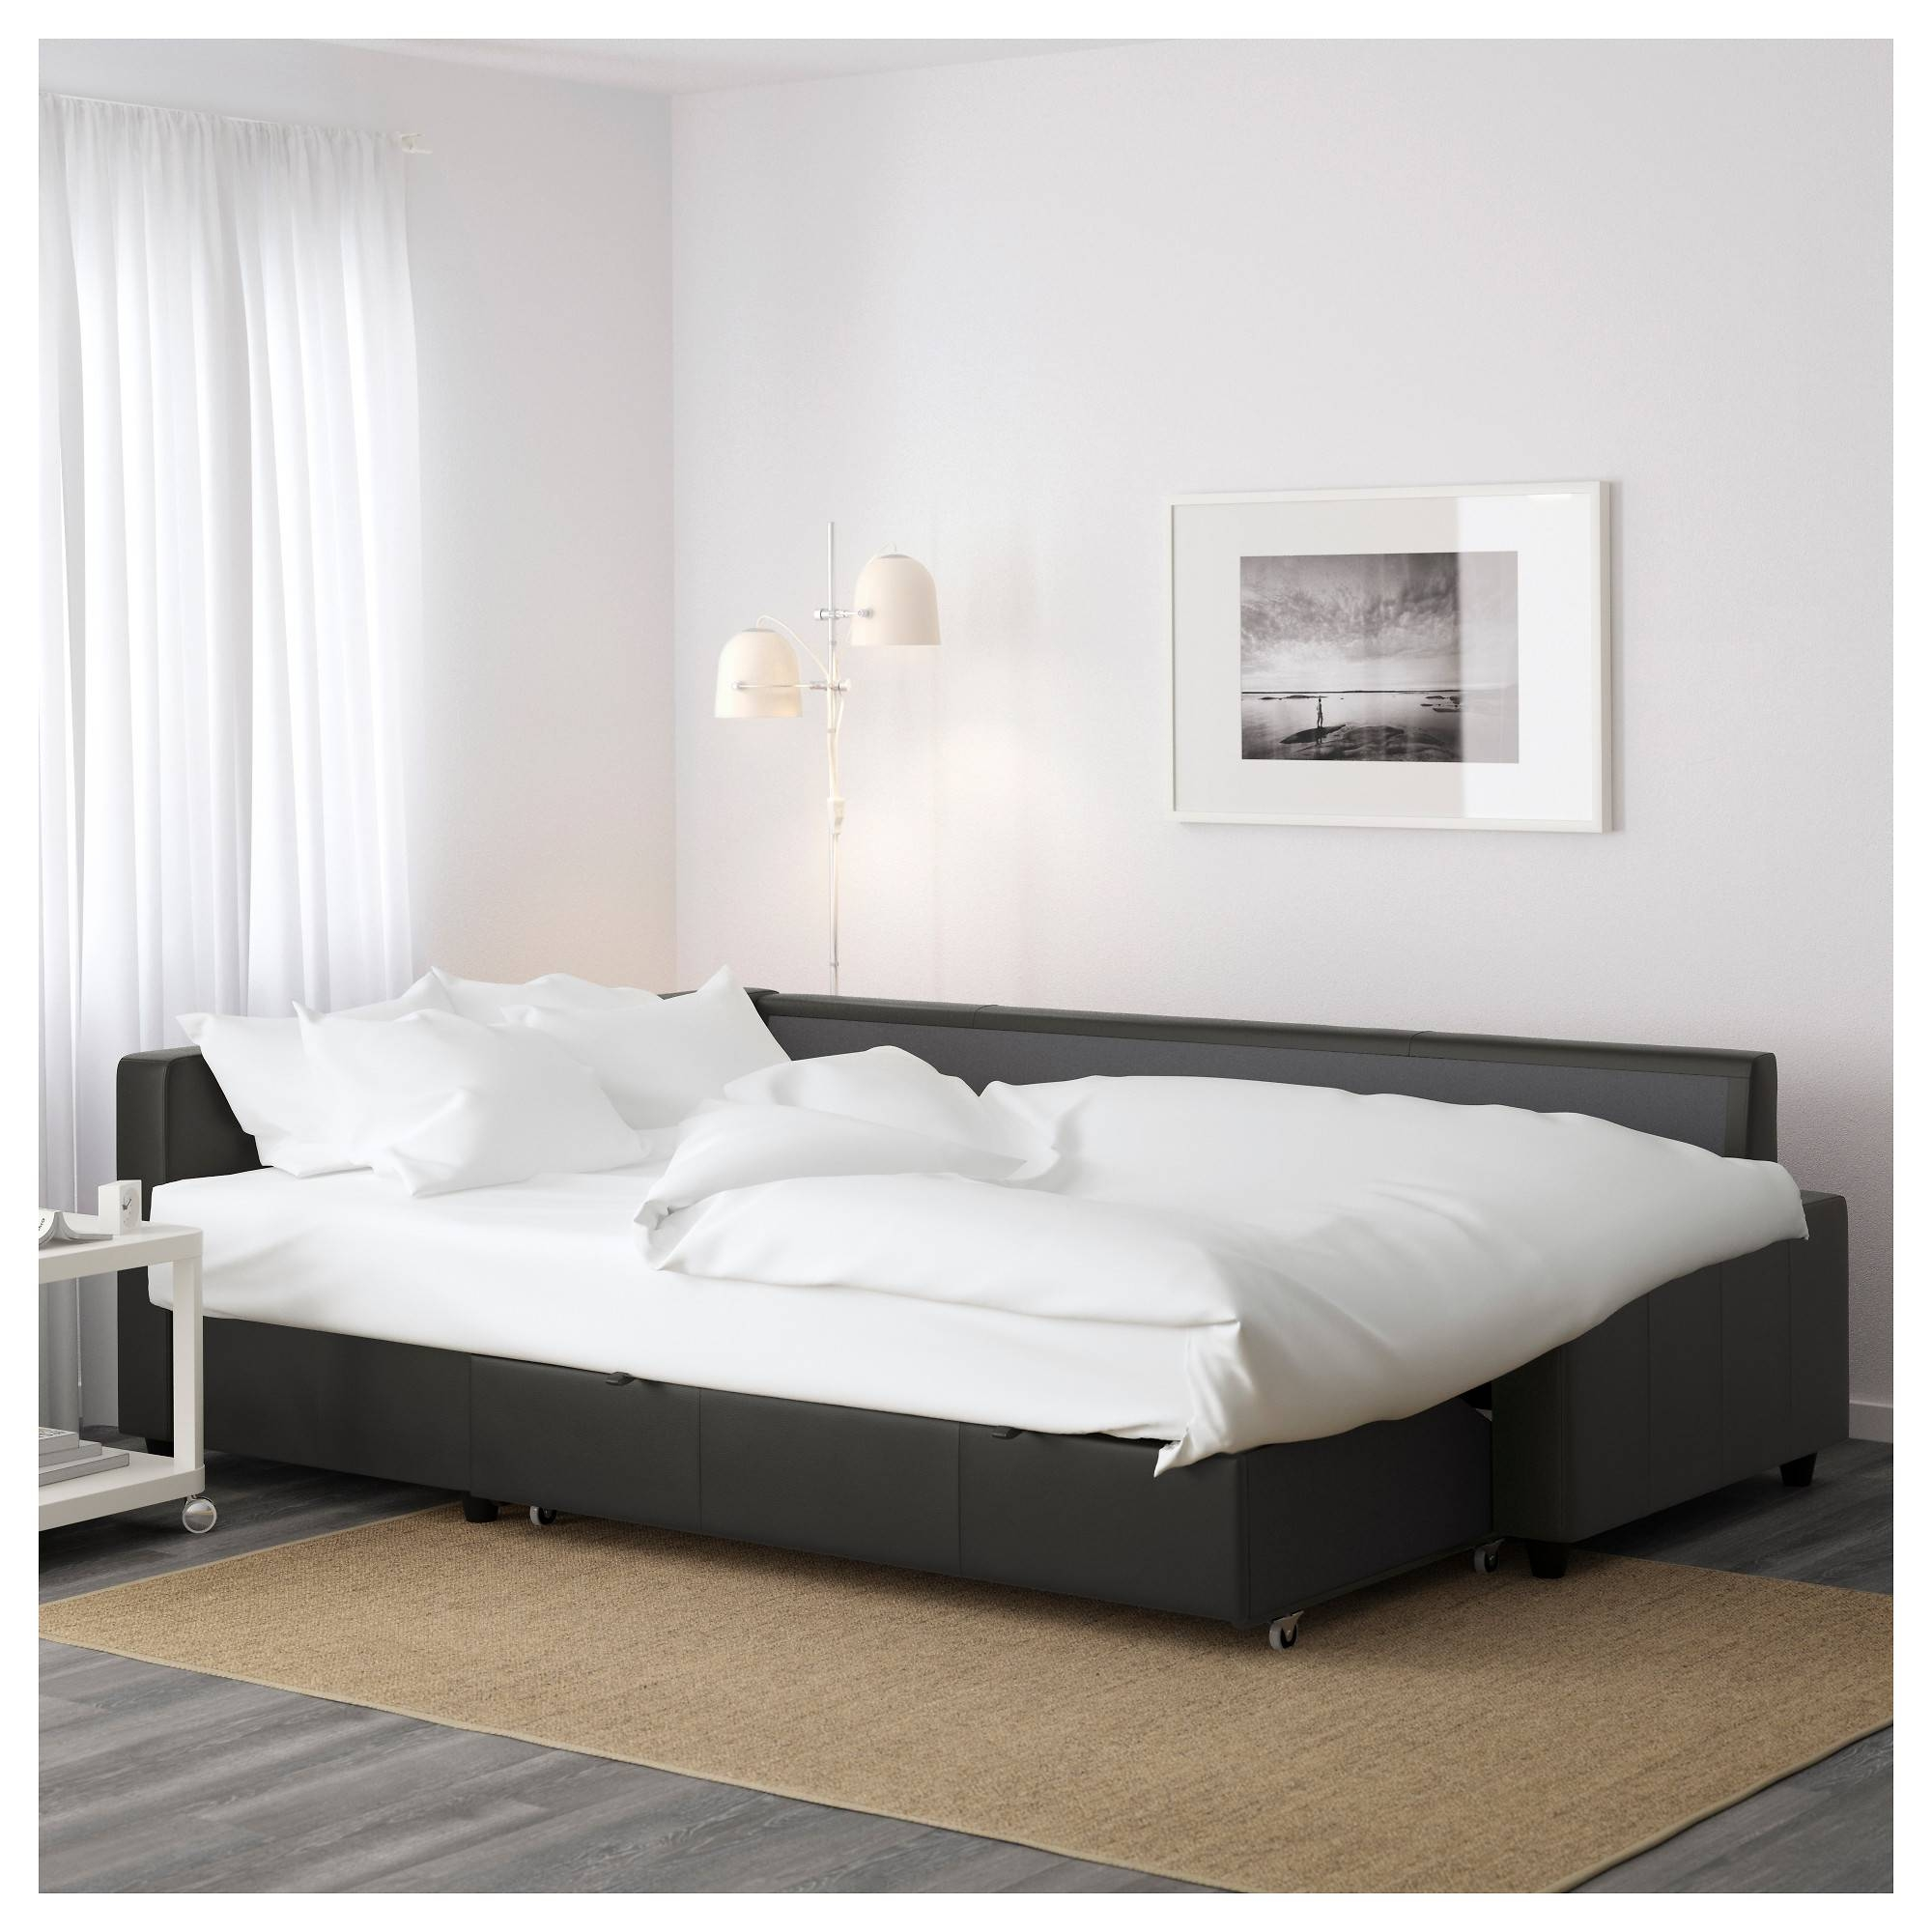 Friheten Corner Sofa-Bed With Storage - Bomstad Black - Ikea with regard to Ikea Corner Sofa Bed With Storage (Image 1 of 25)